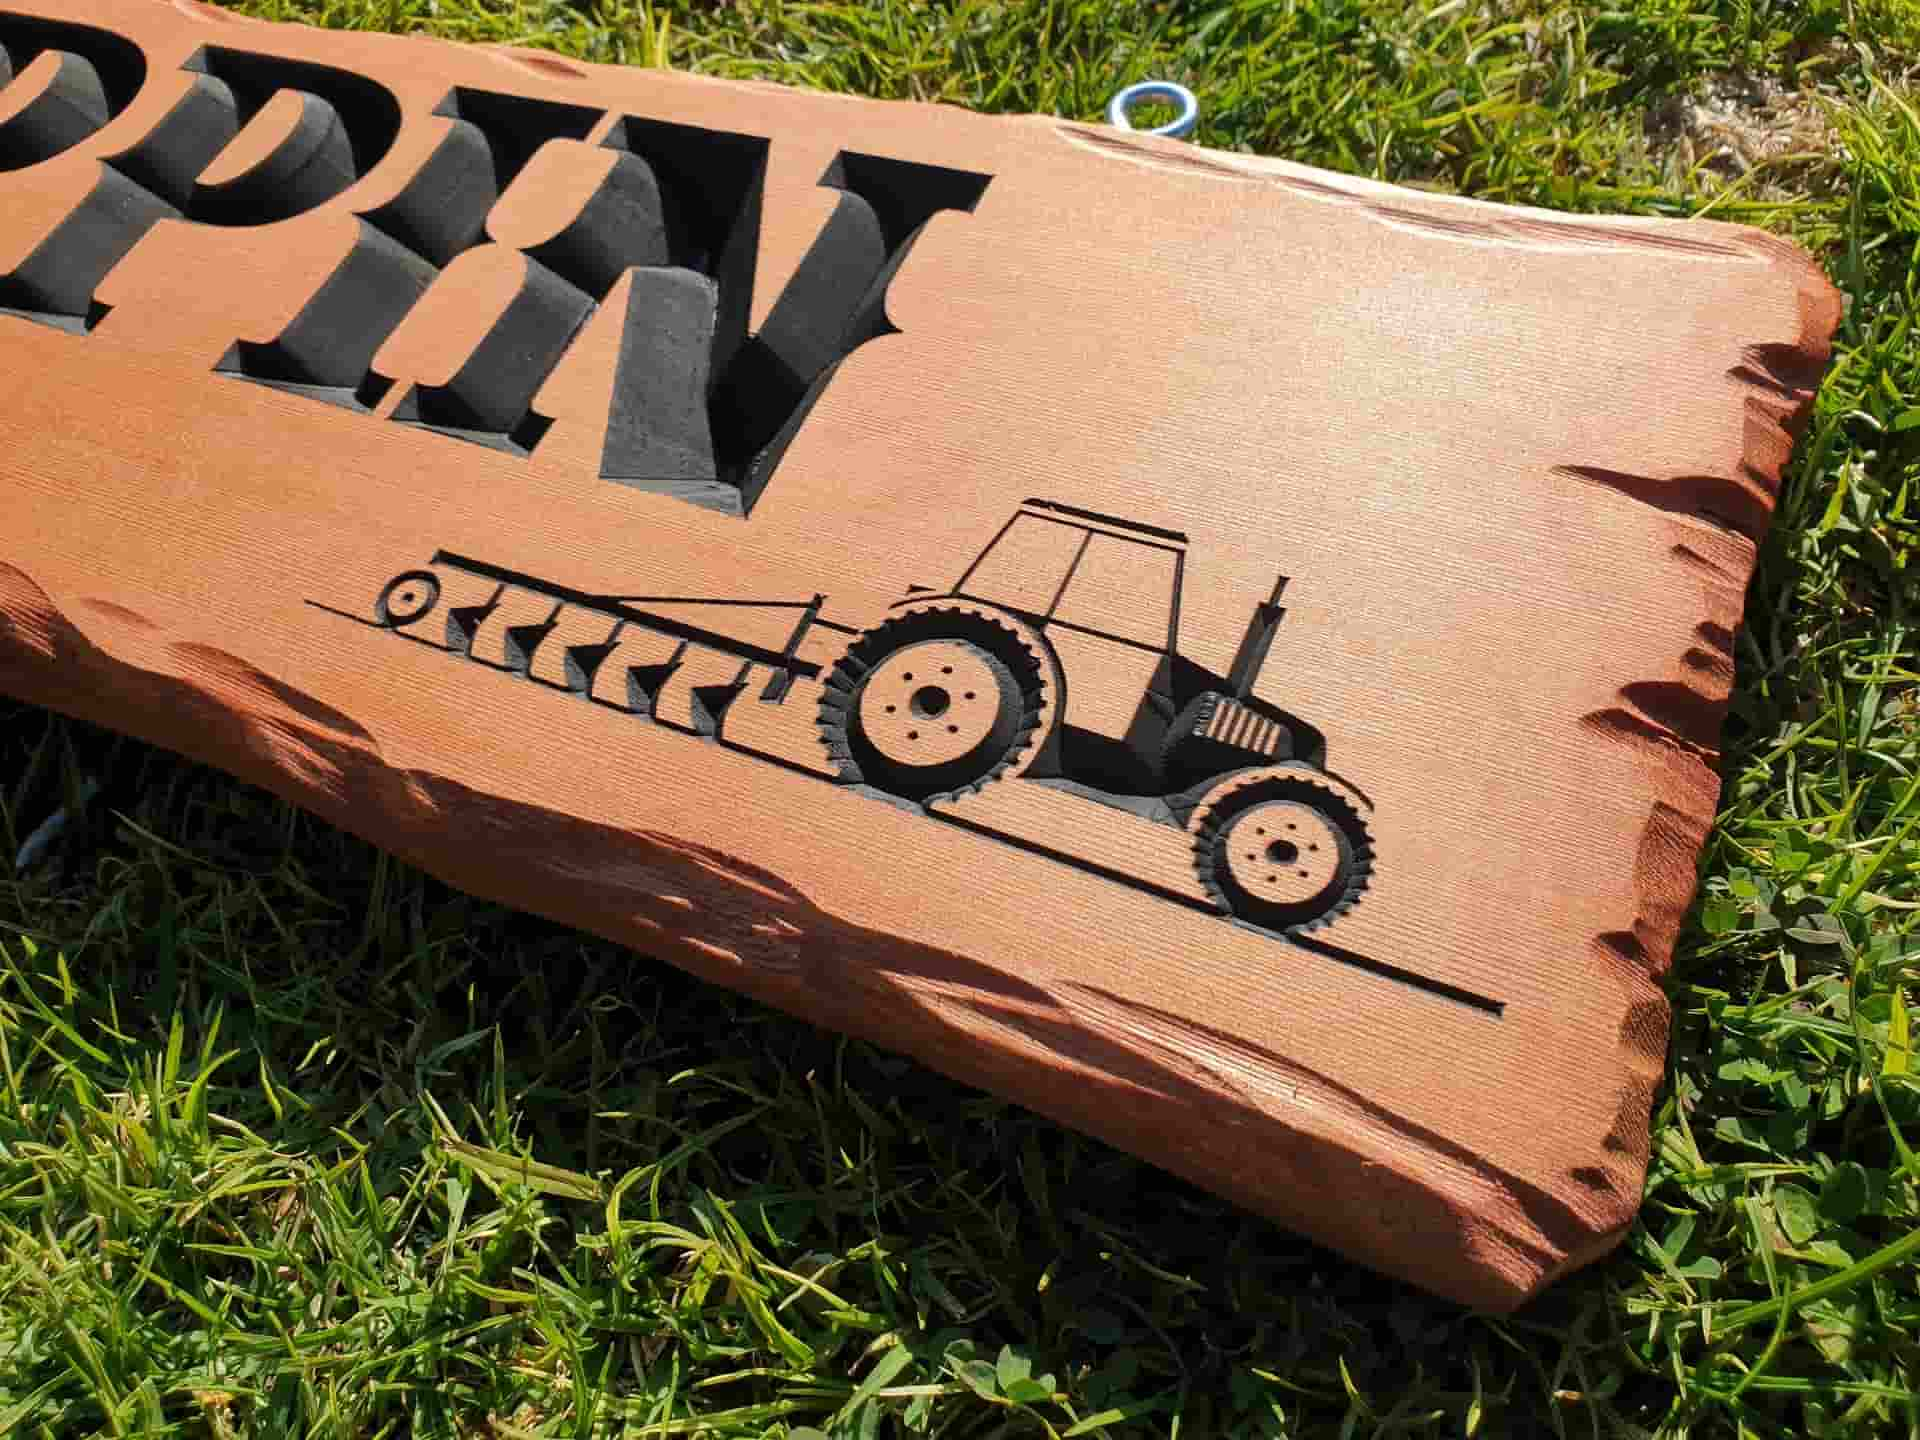 tractor picture engraved into timber